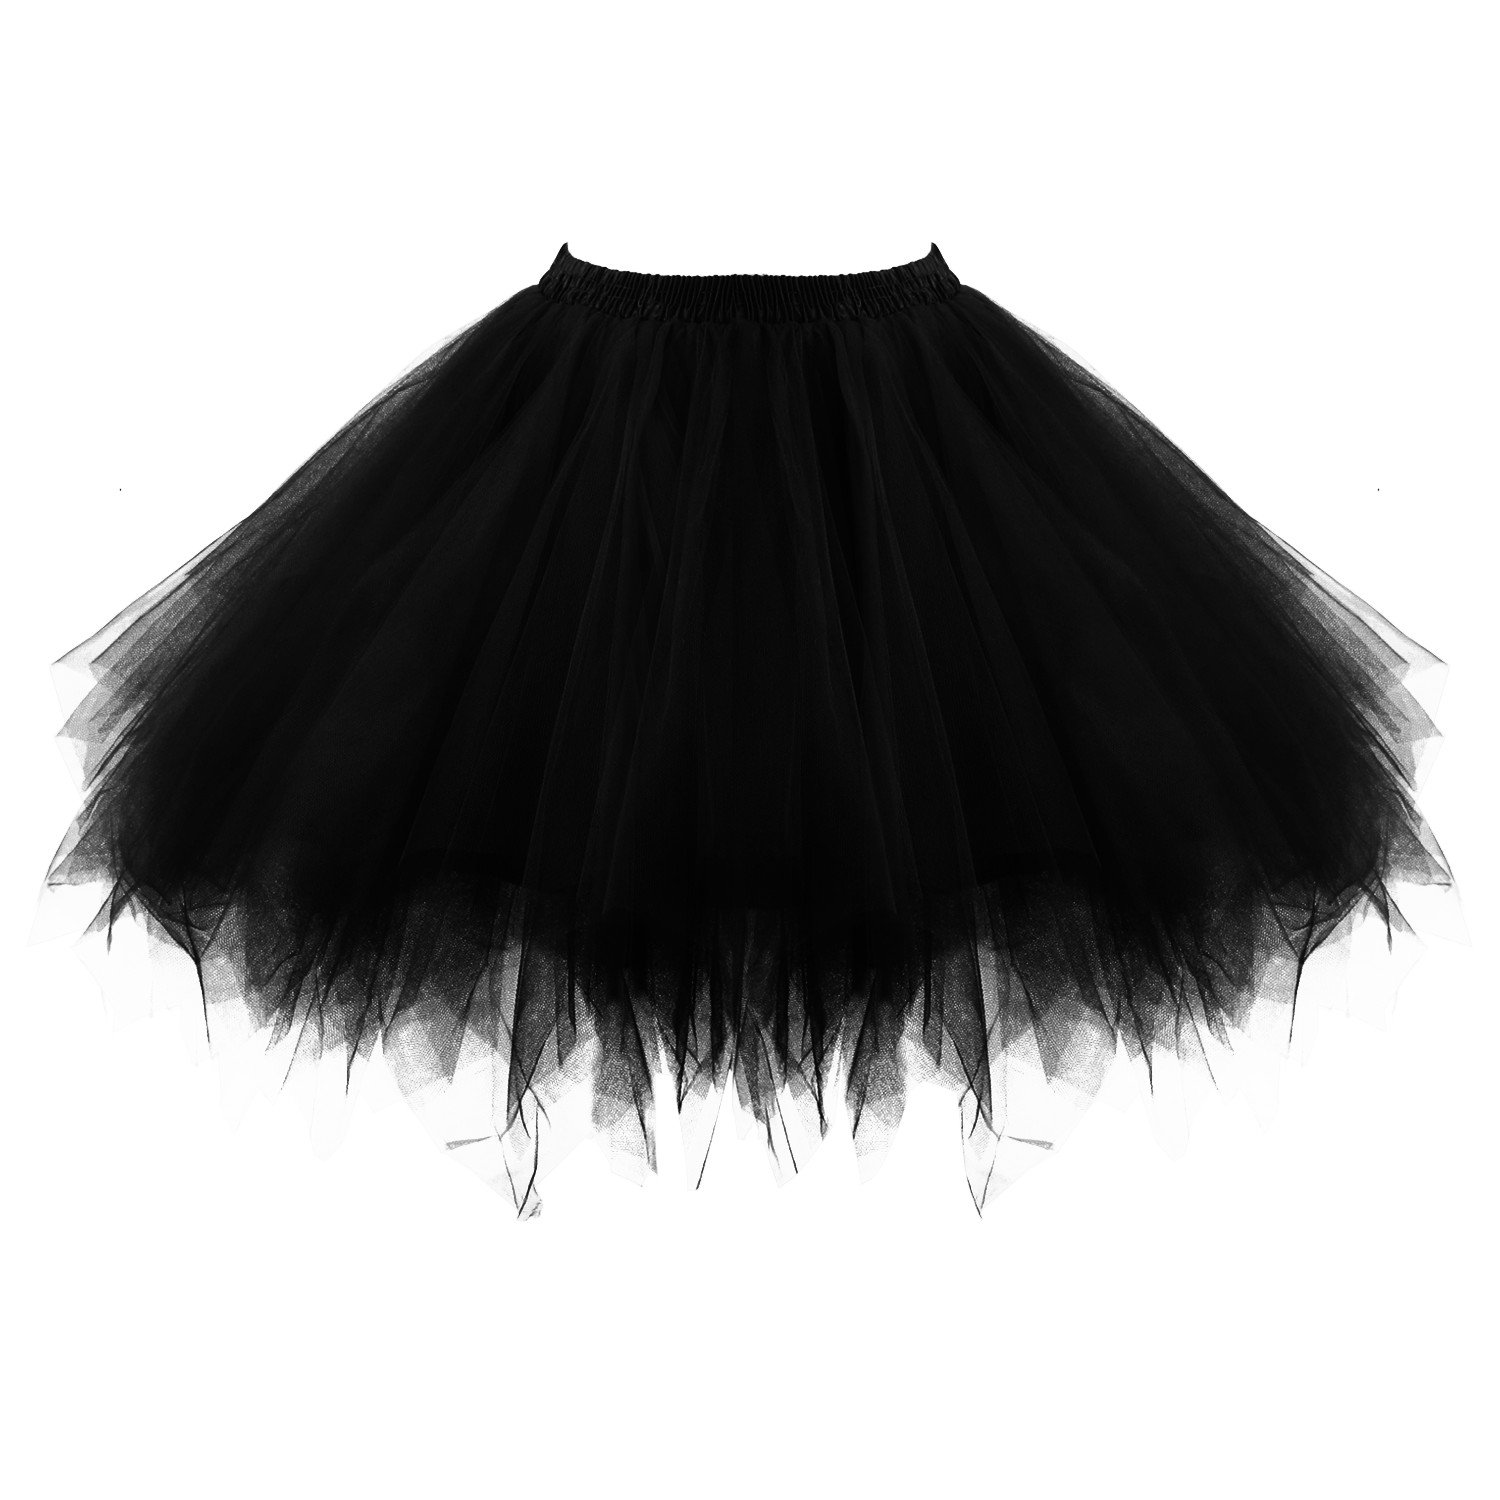 Acecharming Girl's Ballet Tutu Skirts Tulle Bubble Classic Prom Ball Layered Underskirt(Black